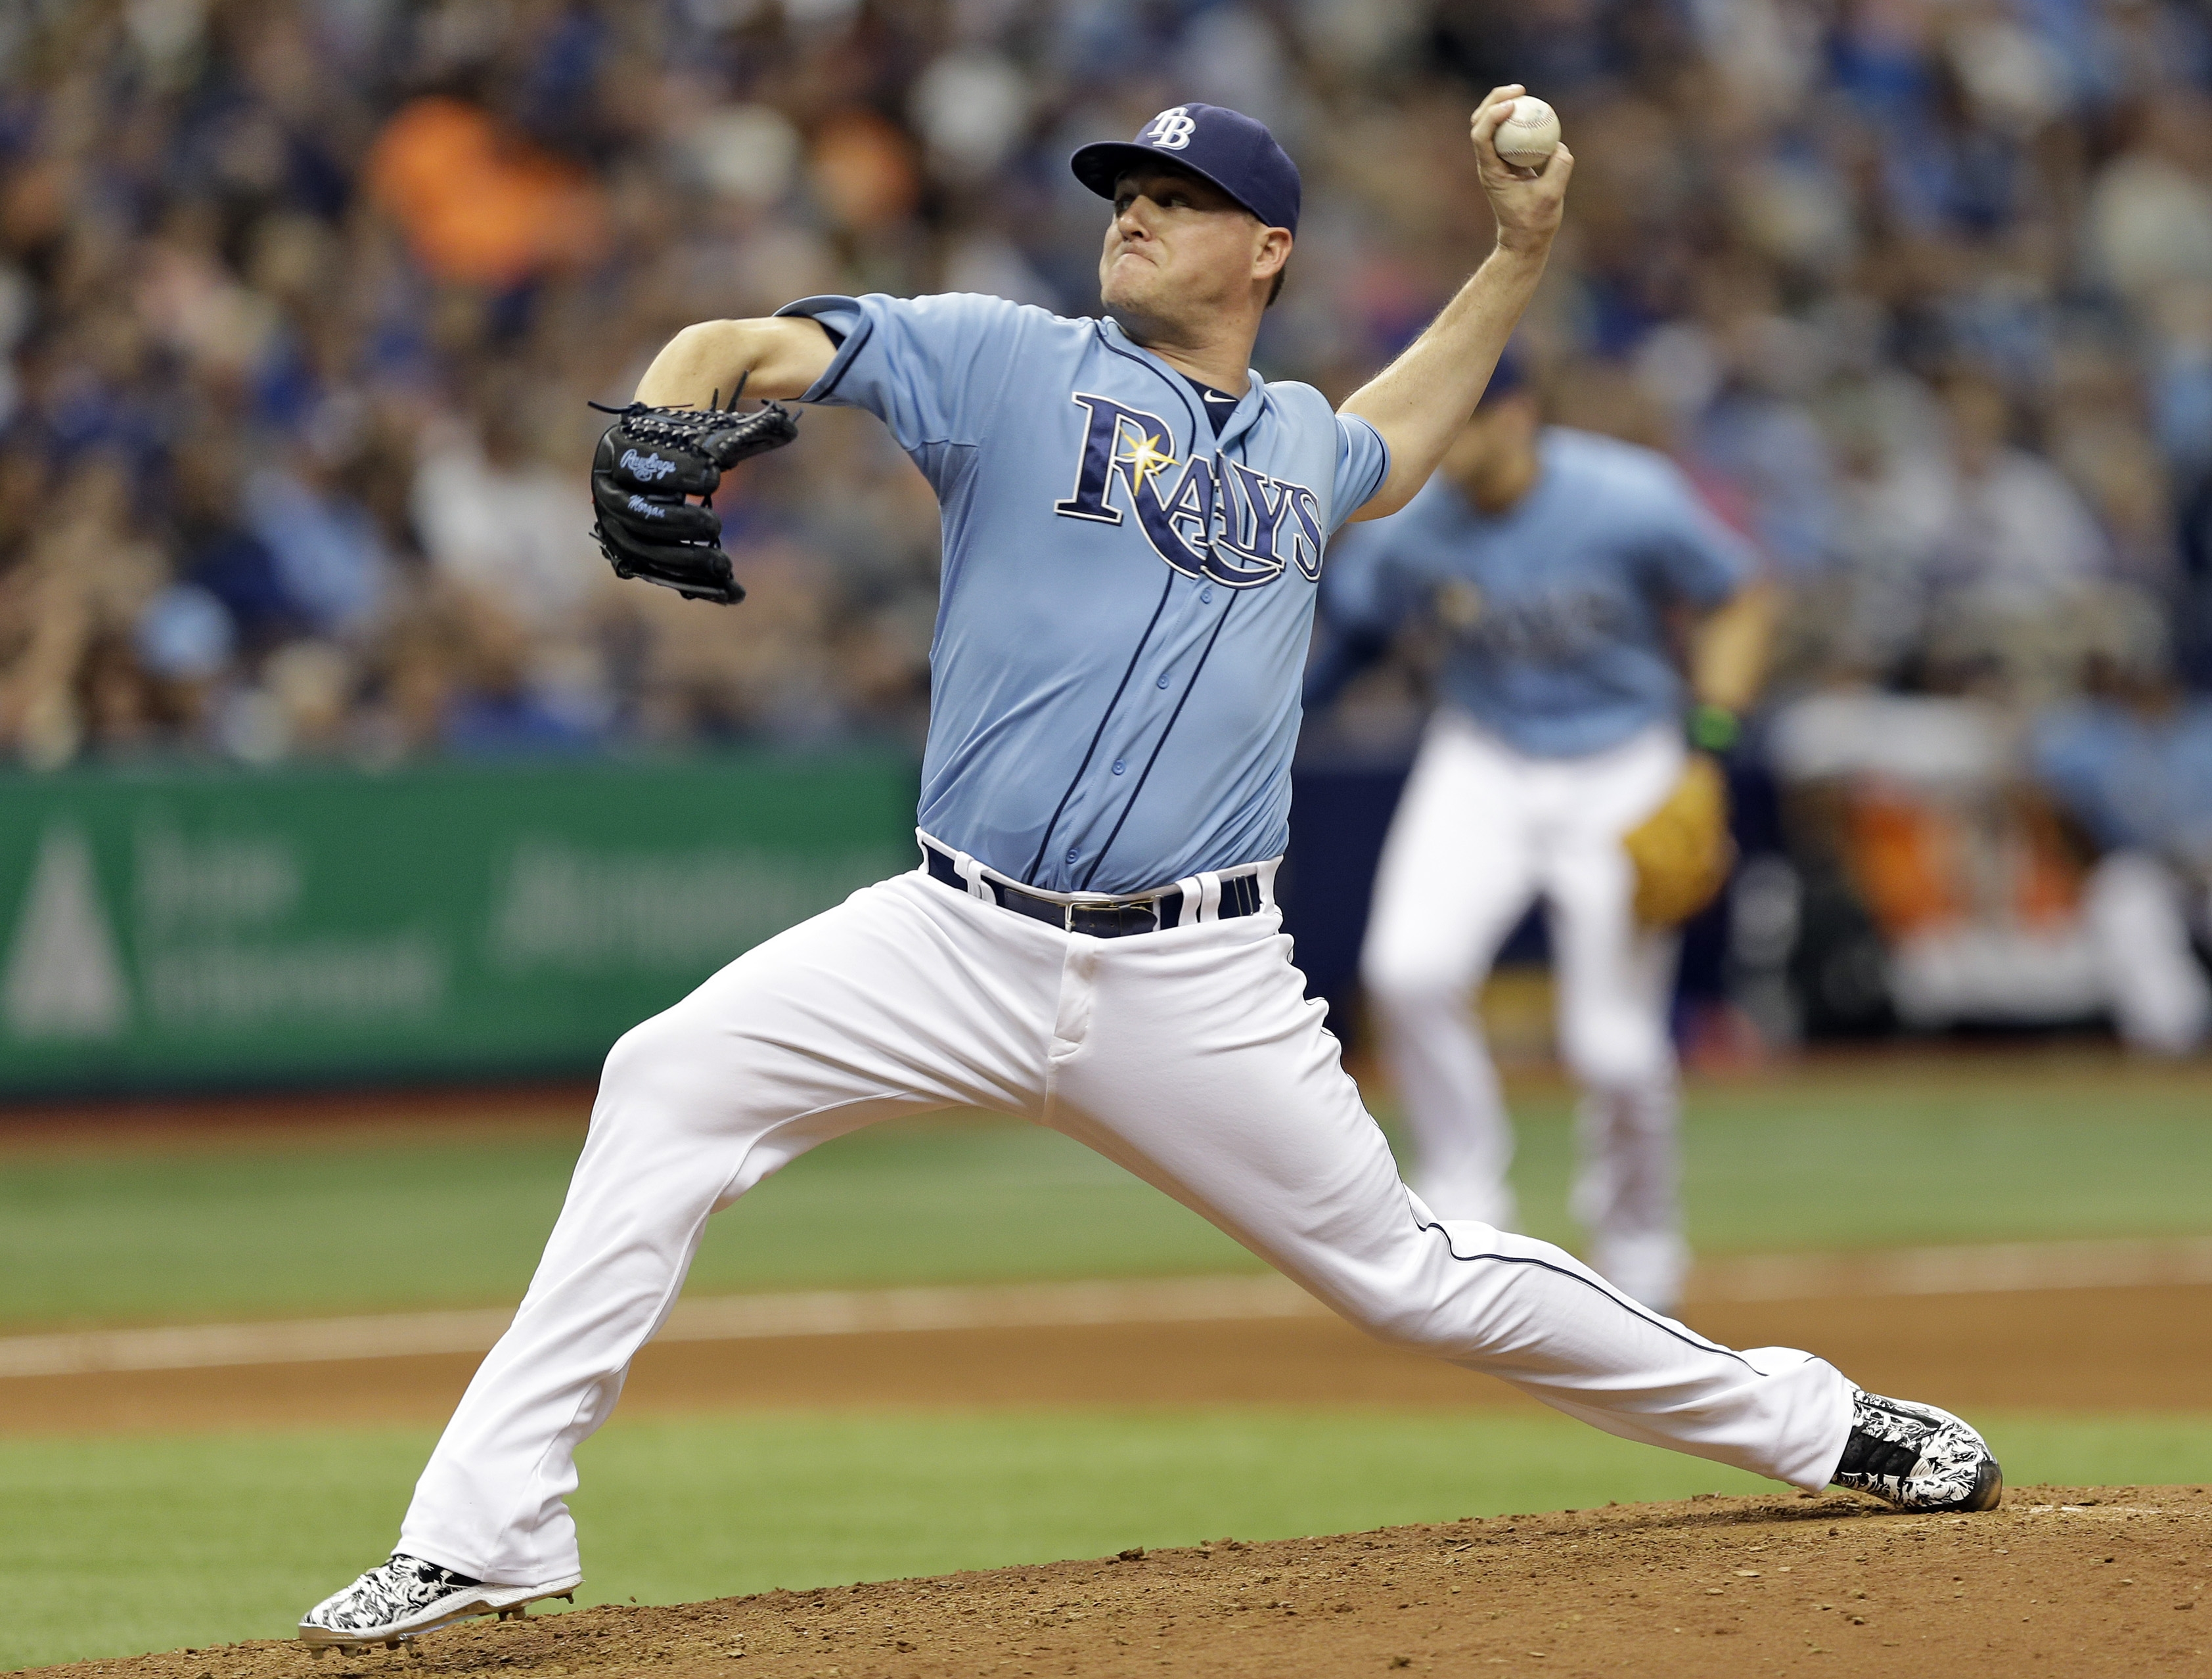 Tampa Bay Rays relief pitcher Jake McGee delivers to the New York Mets during the ninth inning of an interleague baseball game Sunday, Aug. 9, 2015, in St. Petersburg, Fla. McGee picked up the save in the Rays' 4-3 win. (AP Photo/Chris O'Meara)